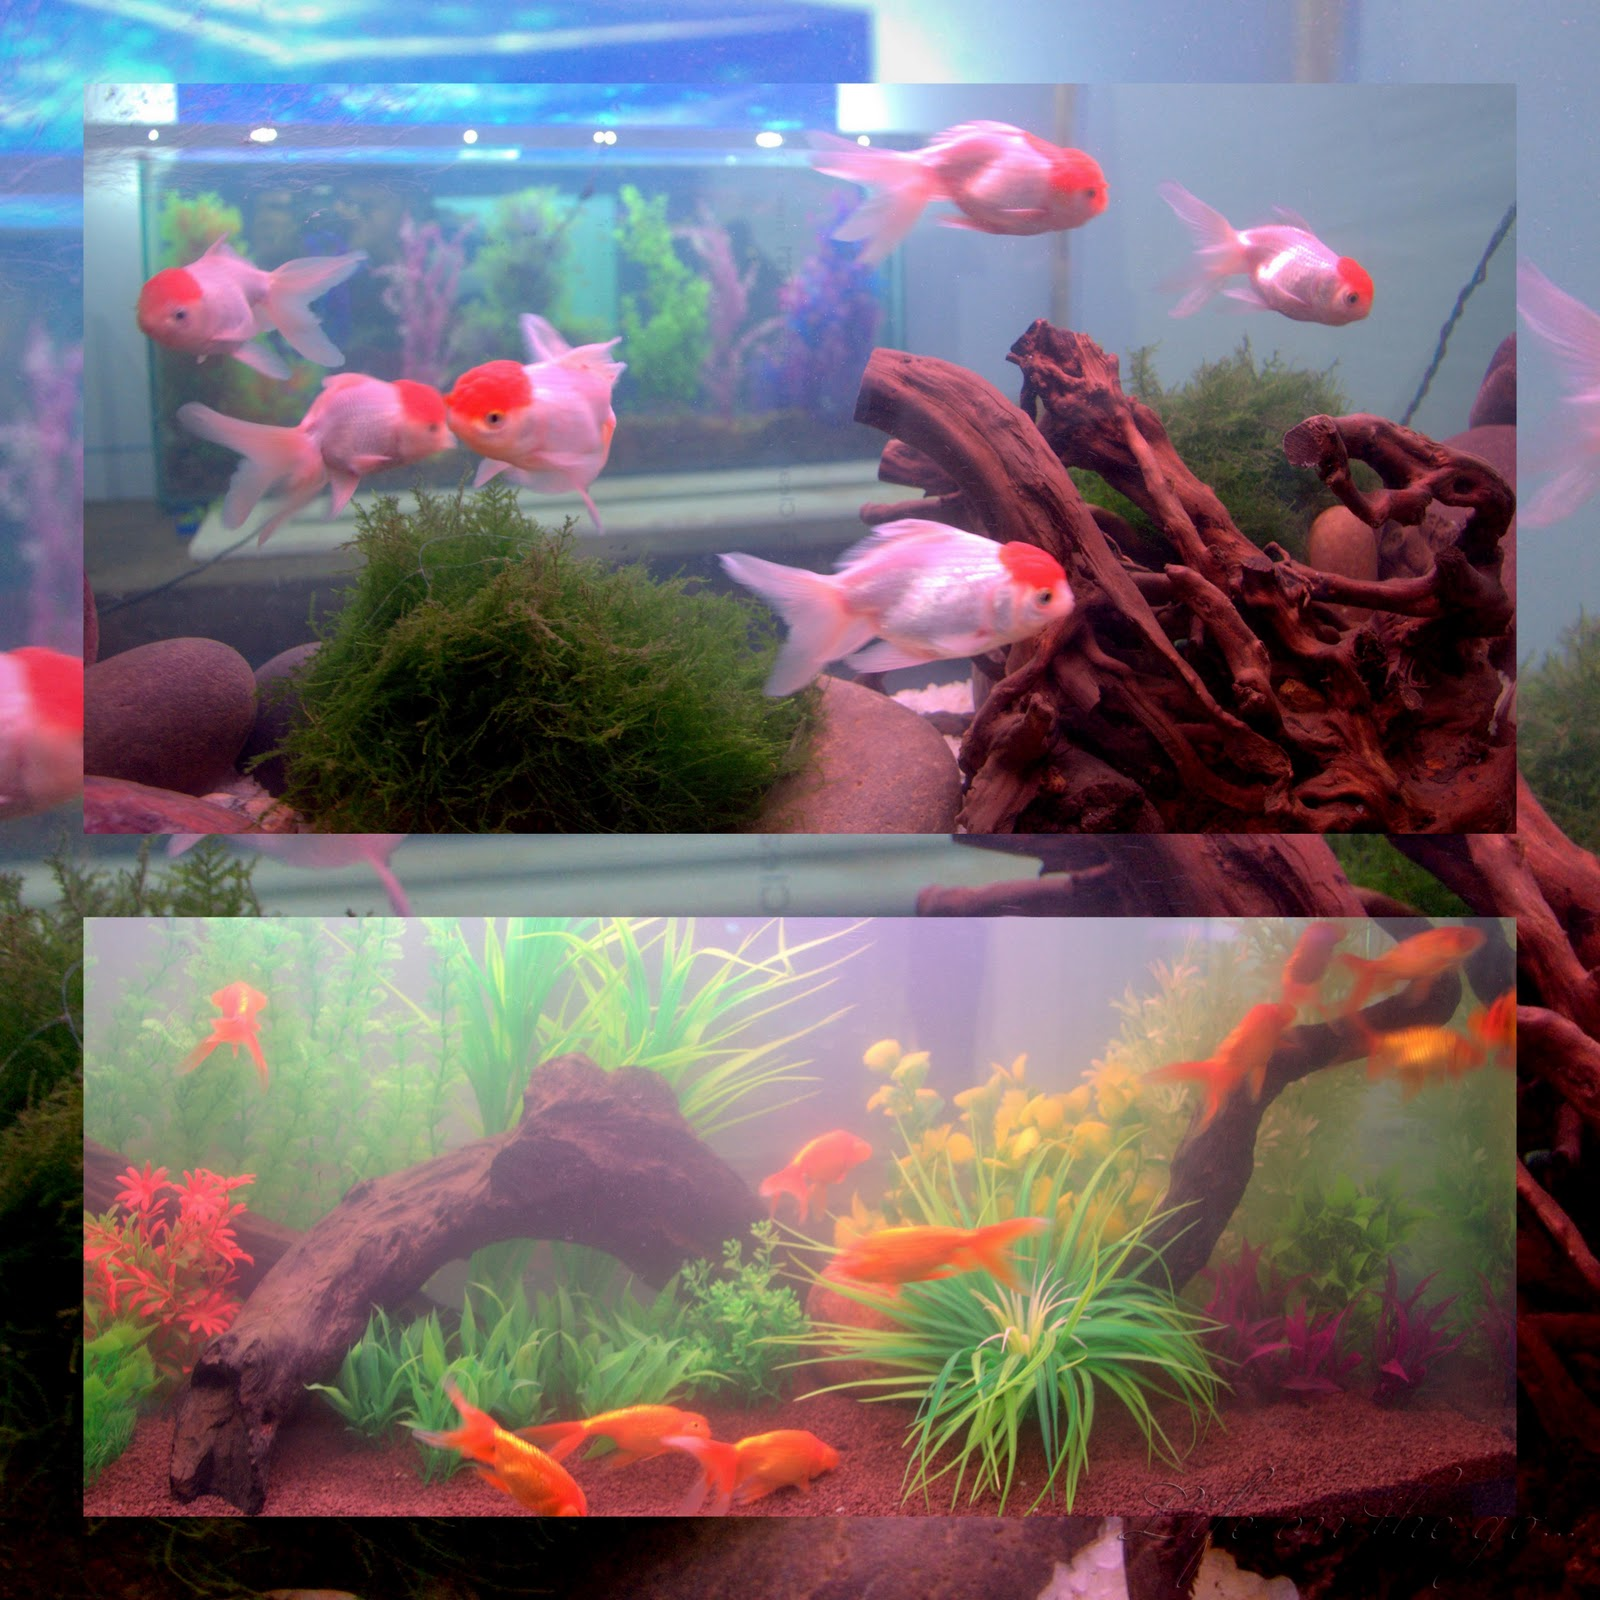 Fish aquarium jabalpur - Read More